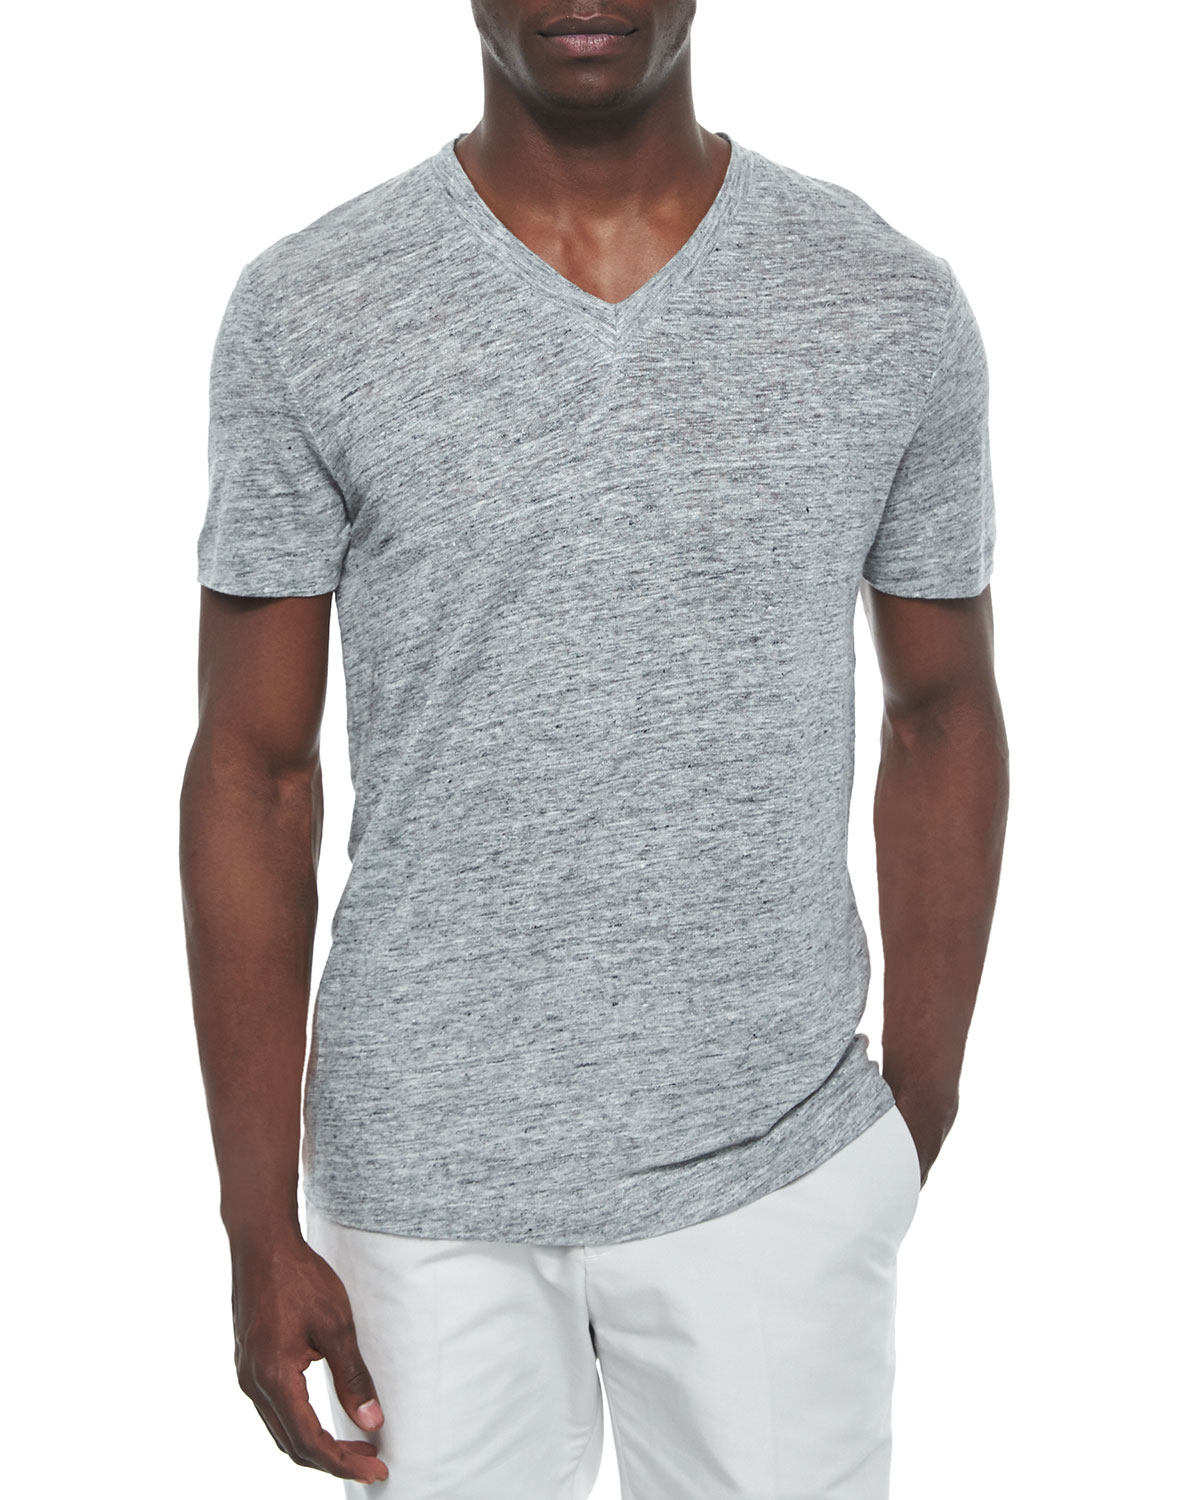 Linen V-Neck Tee, Heather Gray